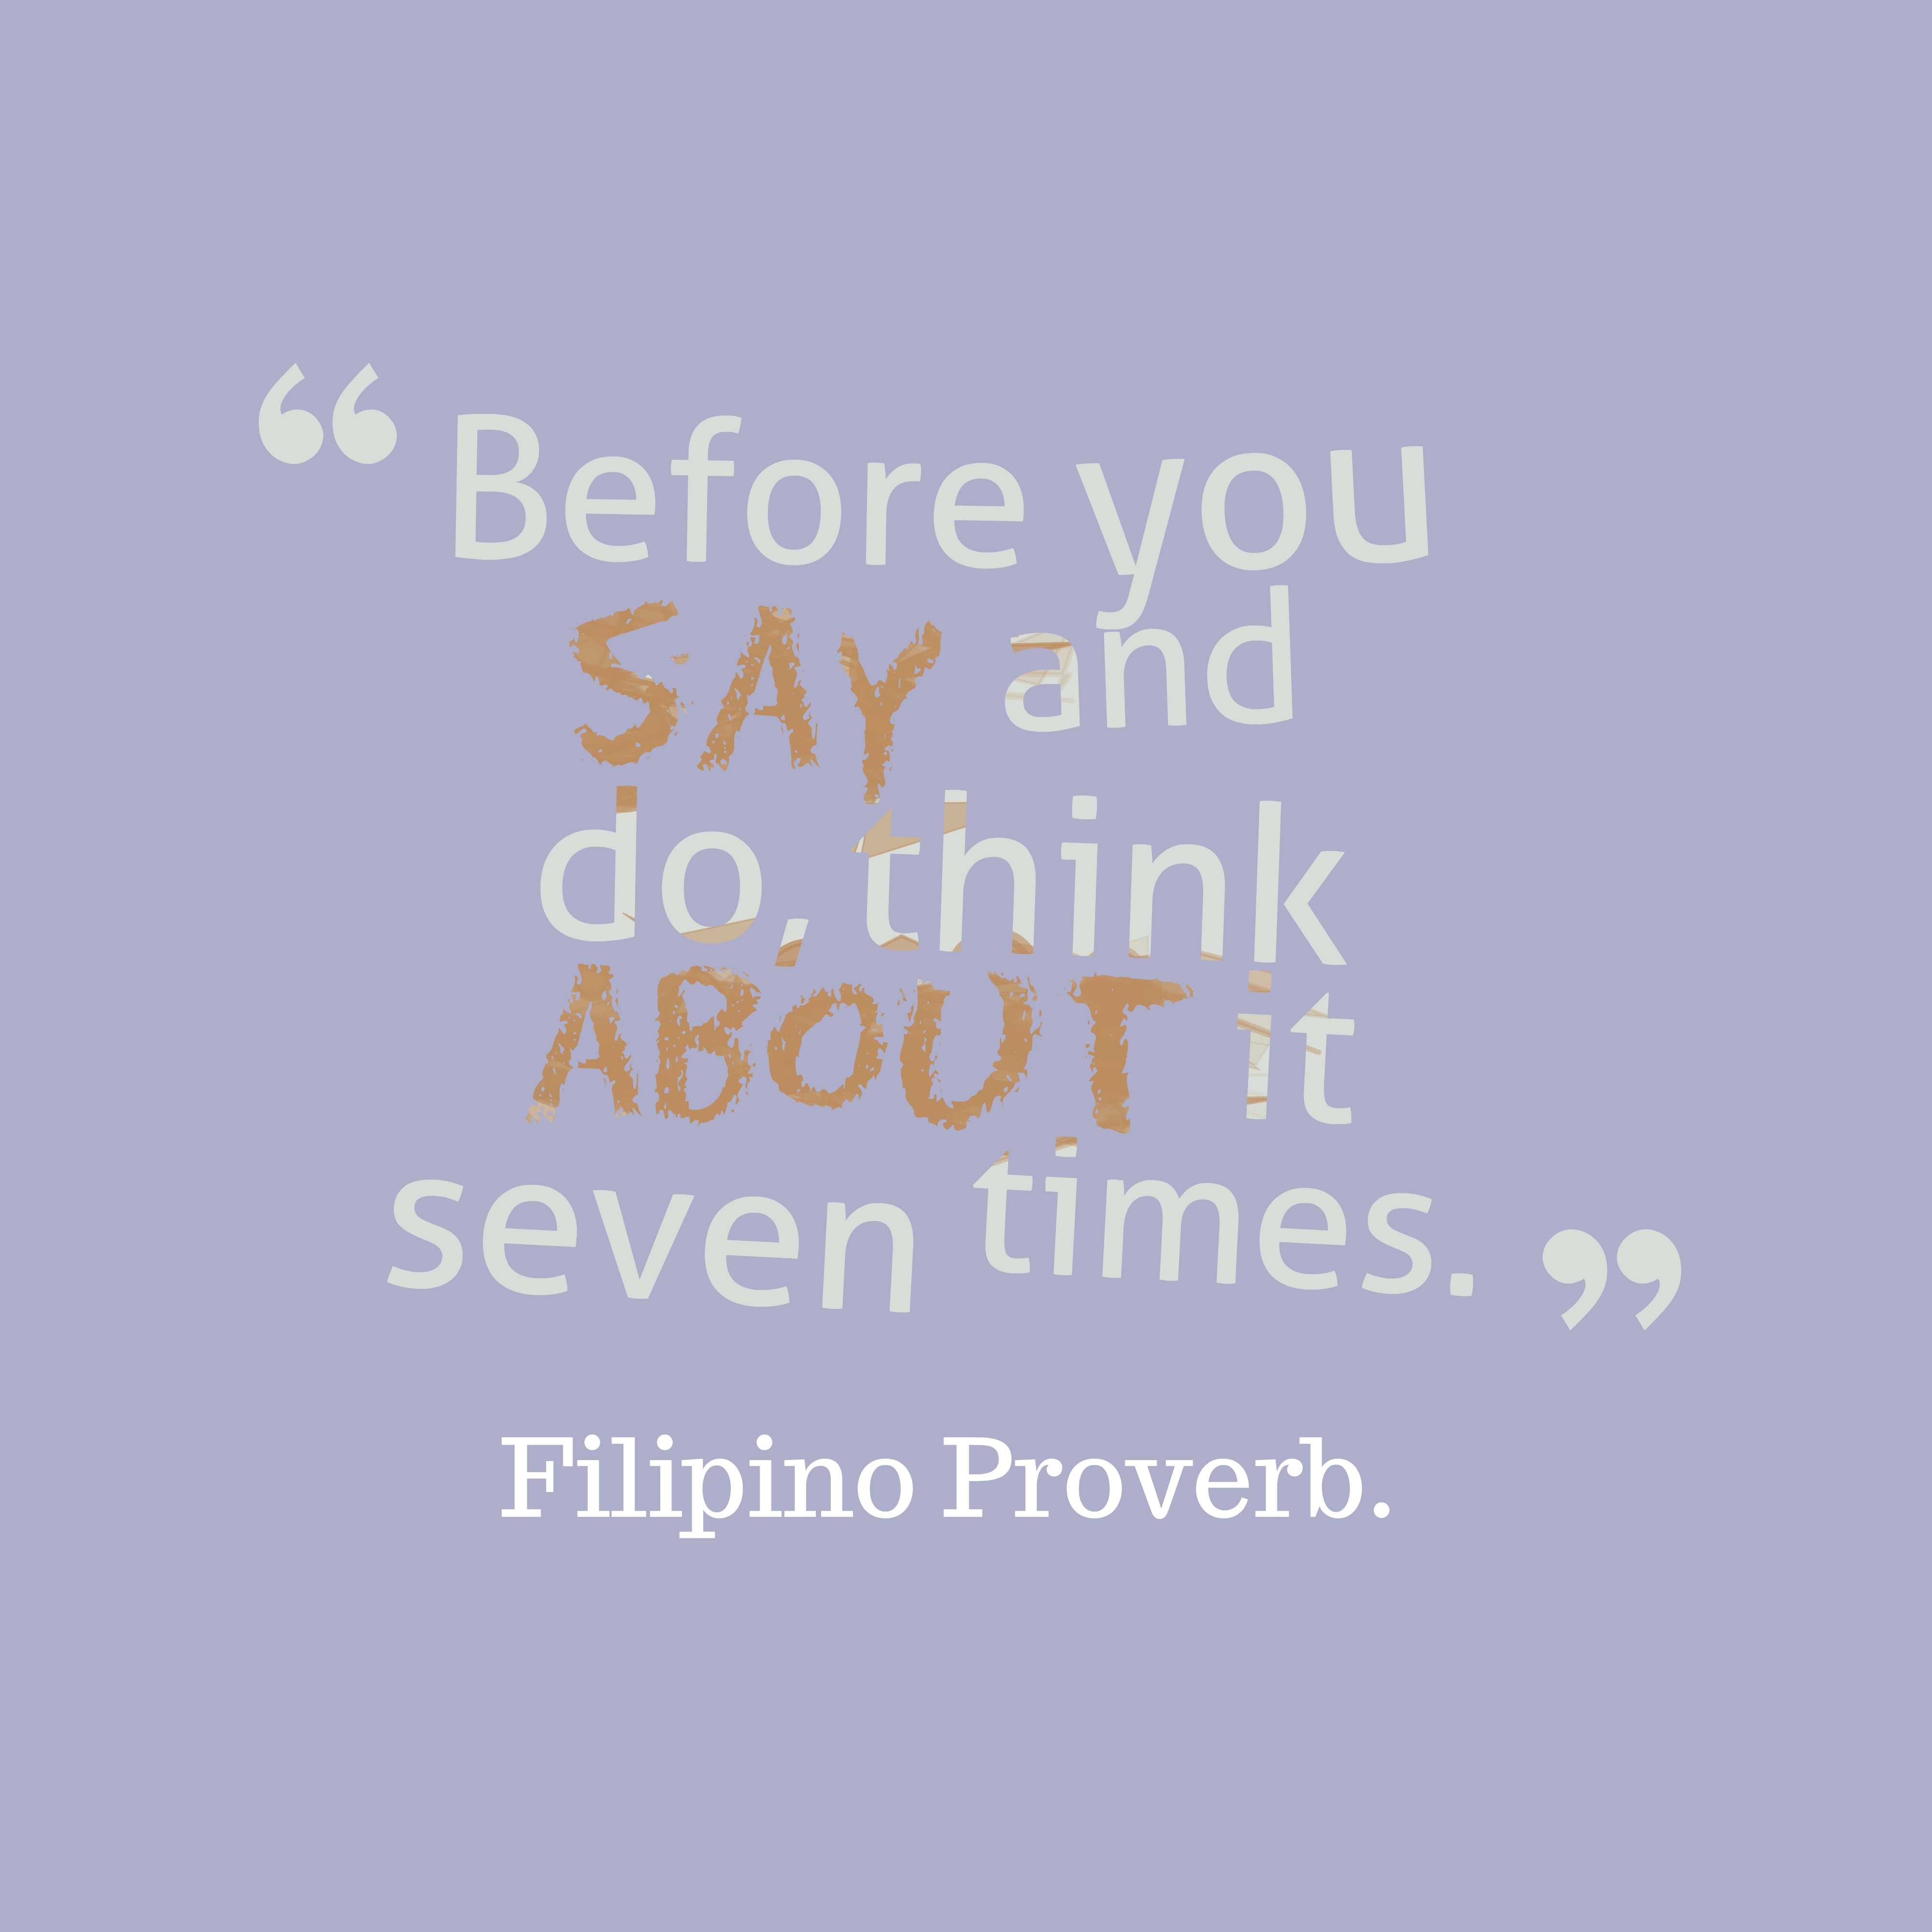 Quotes image of Before you say and do, think about it seven times.